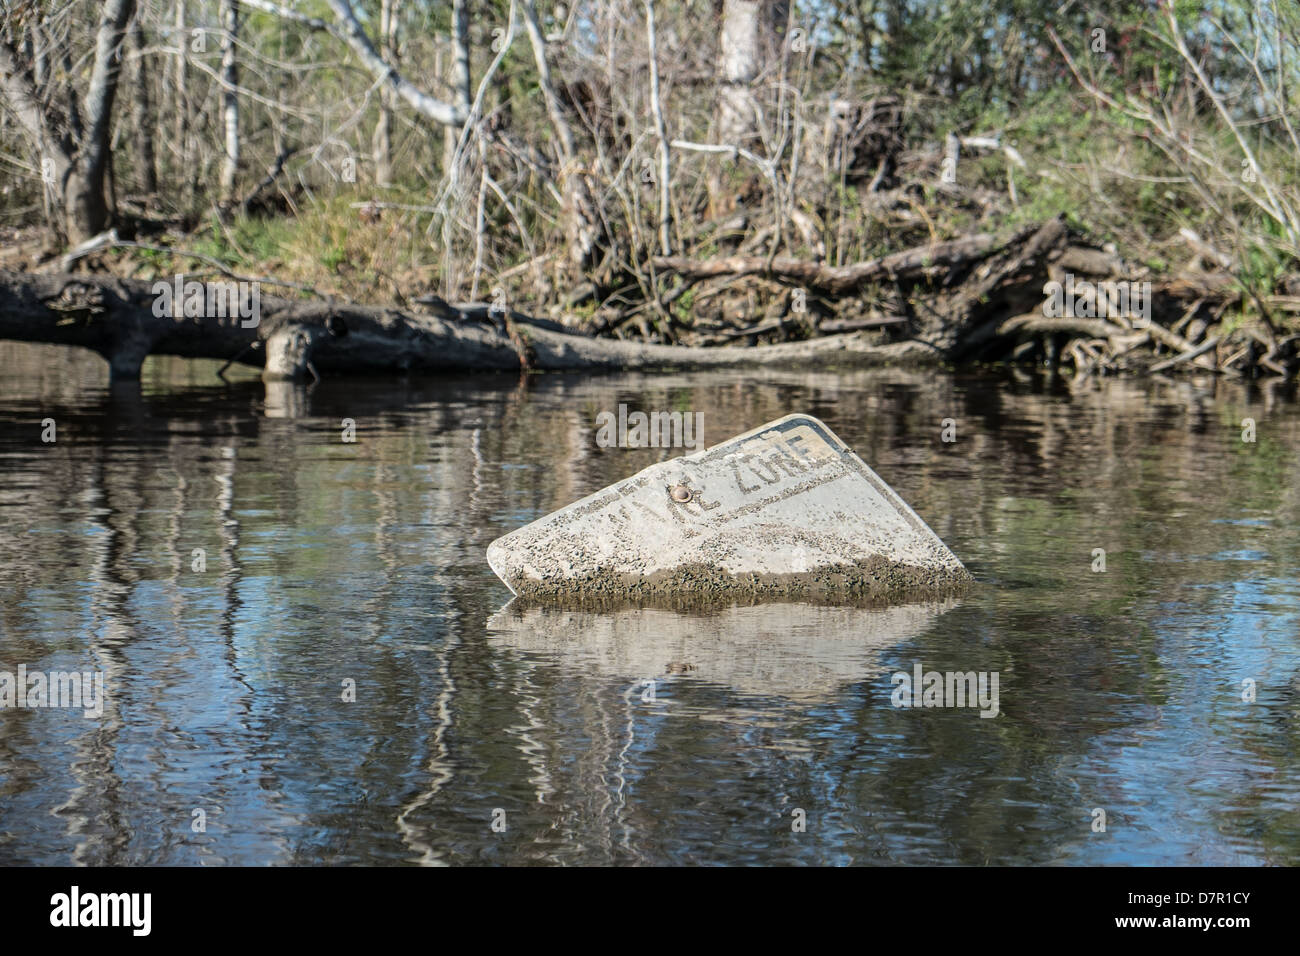 A 'No Wake' sign submerged in swamp water - Stock Image